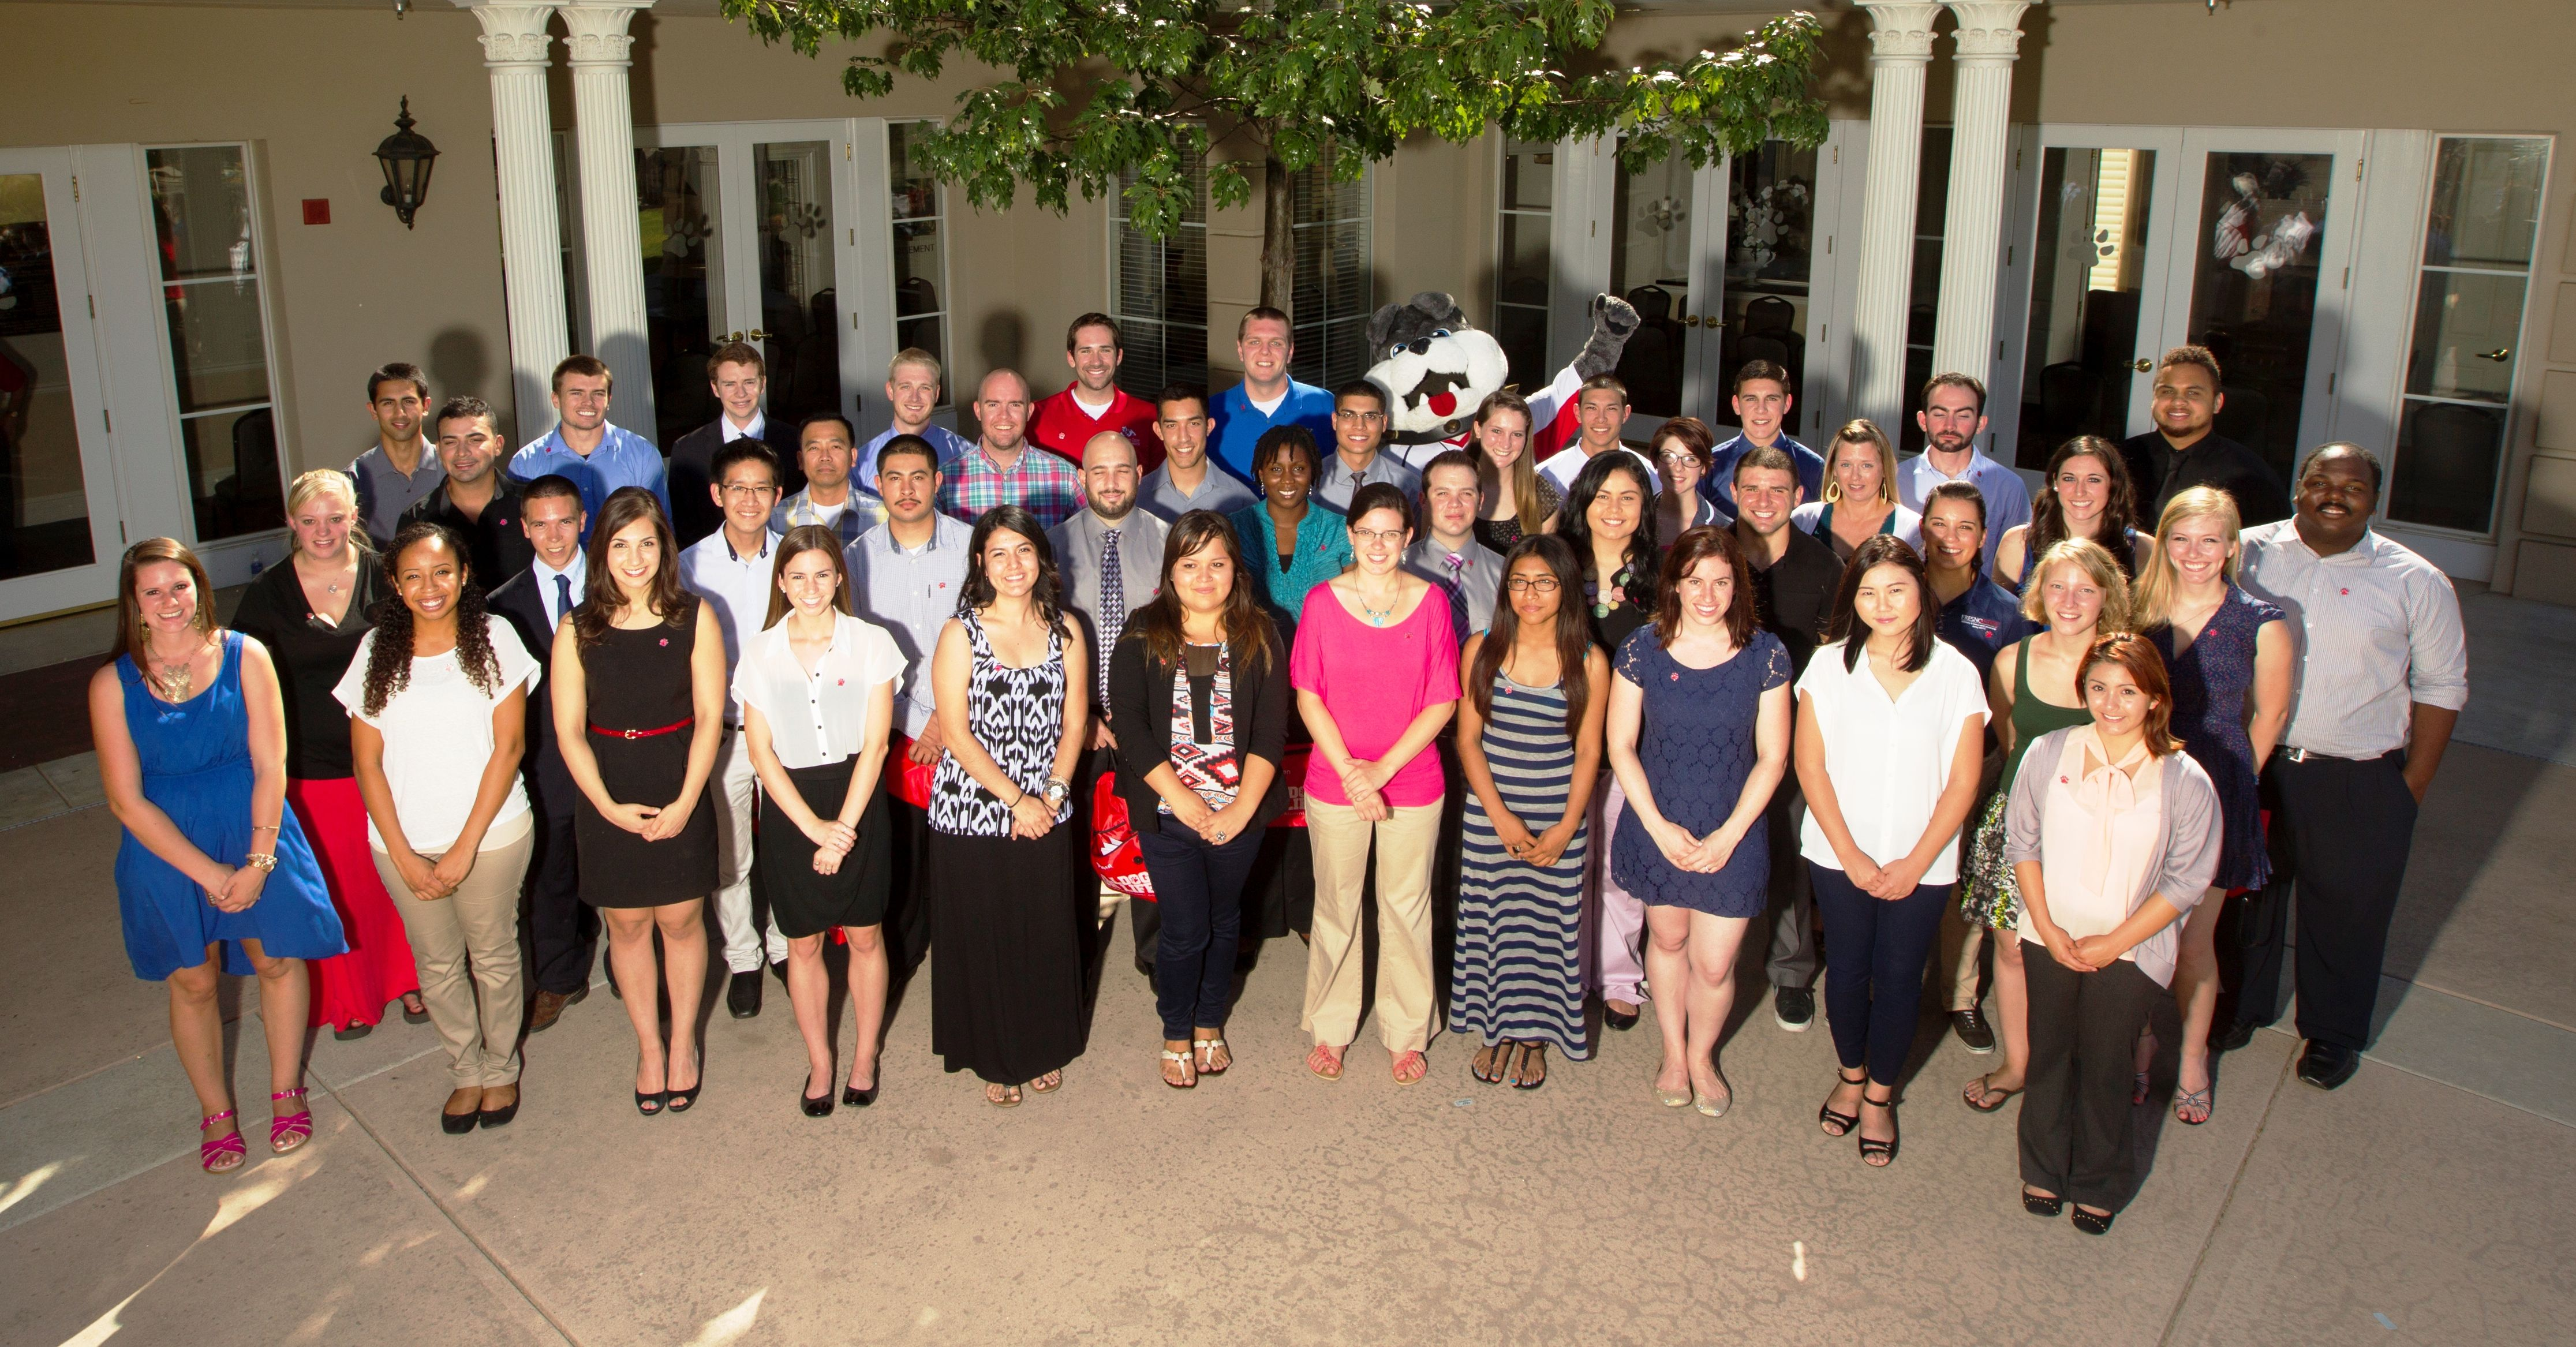 Congratulations to the 201314 FSAA Scholars! Student